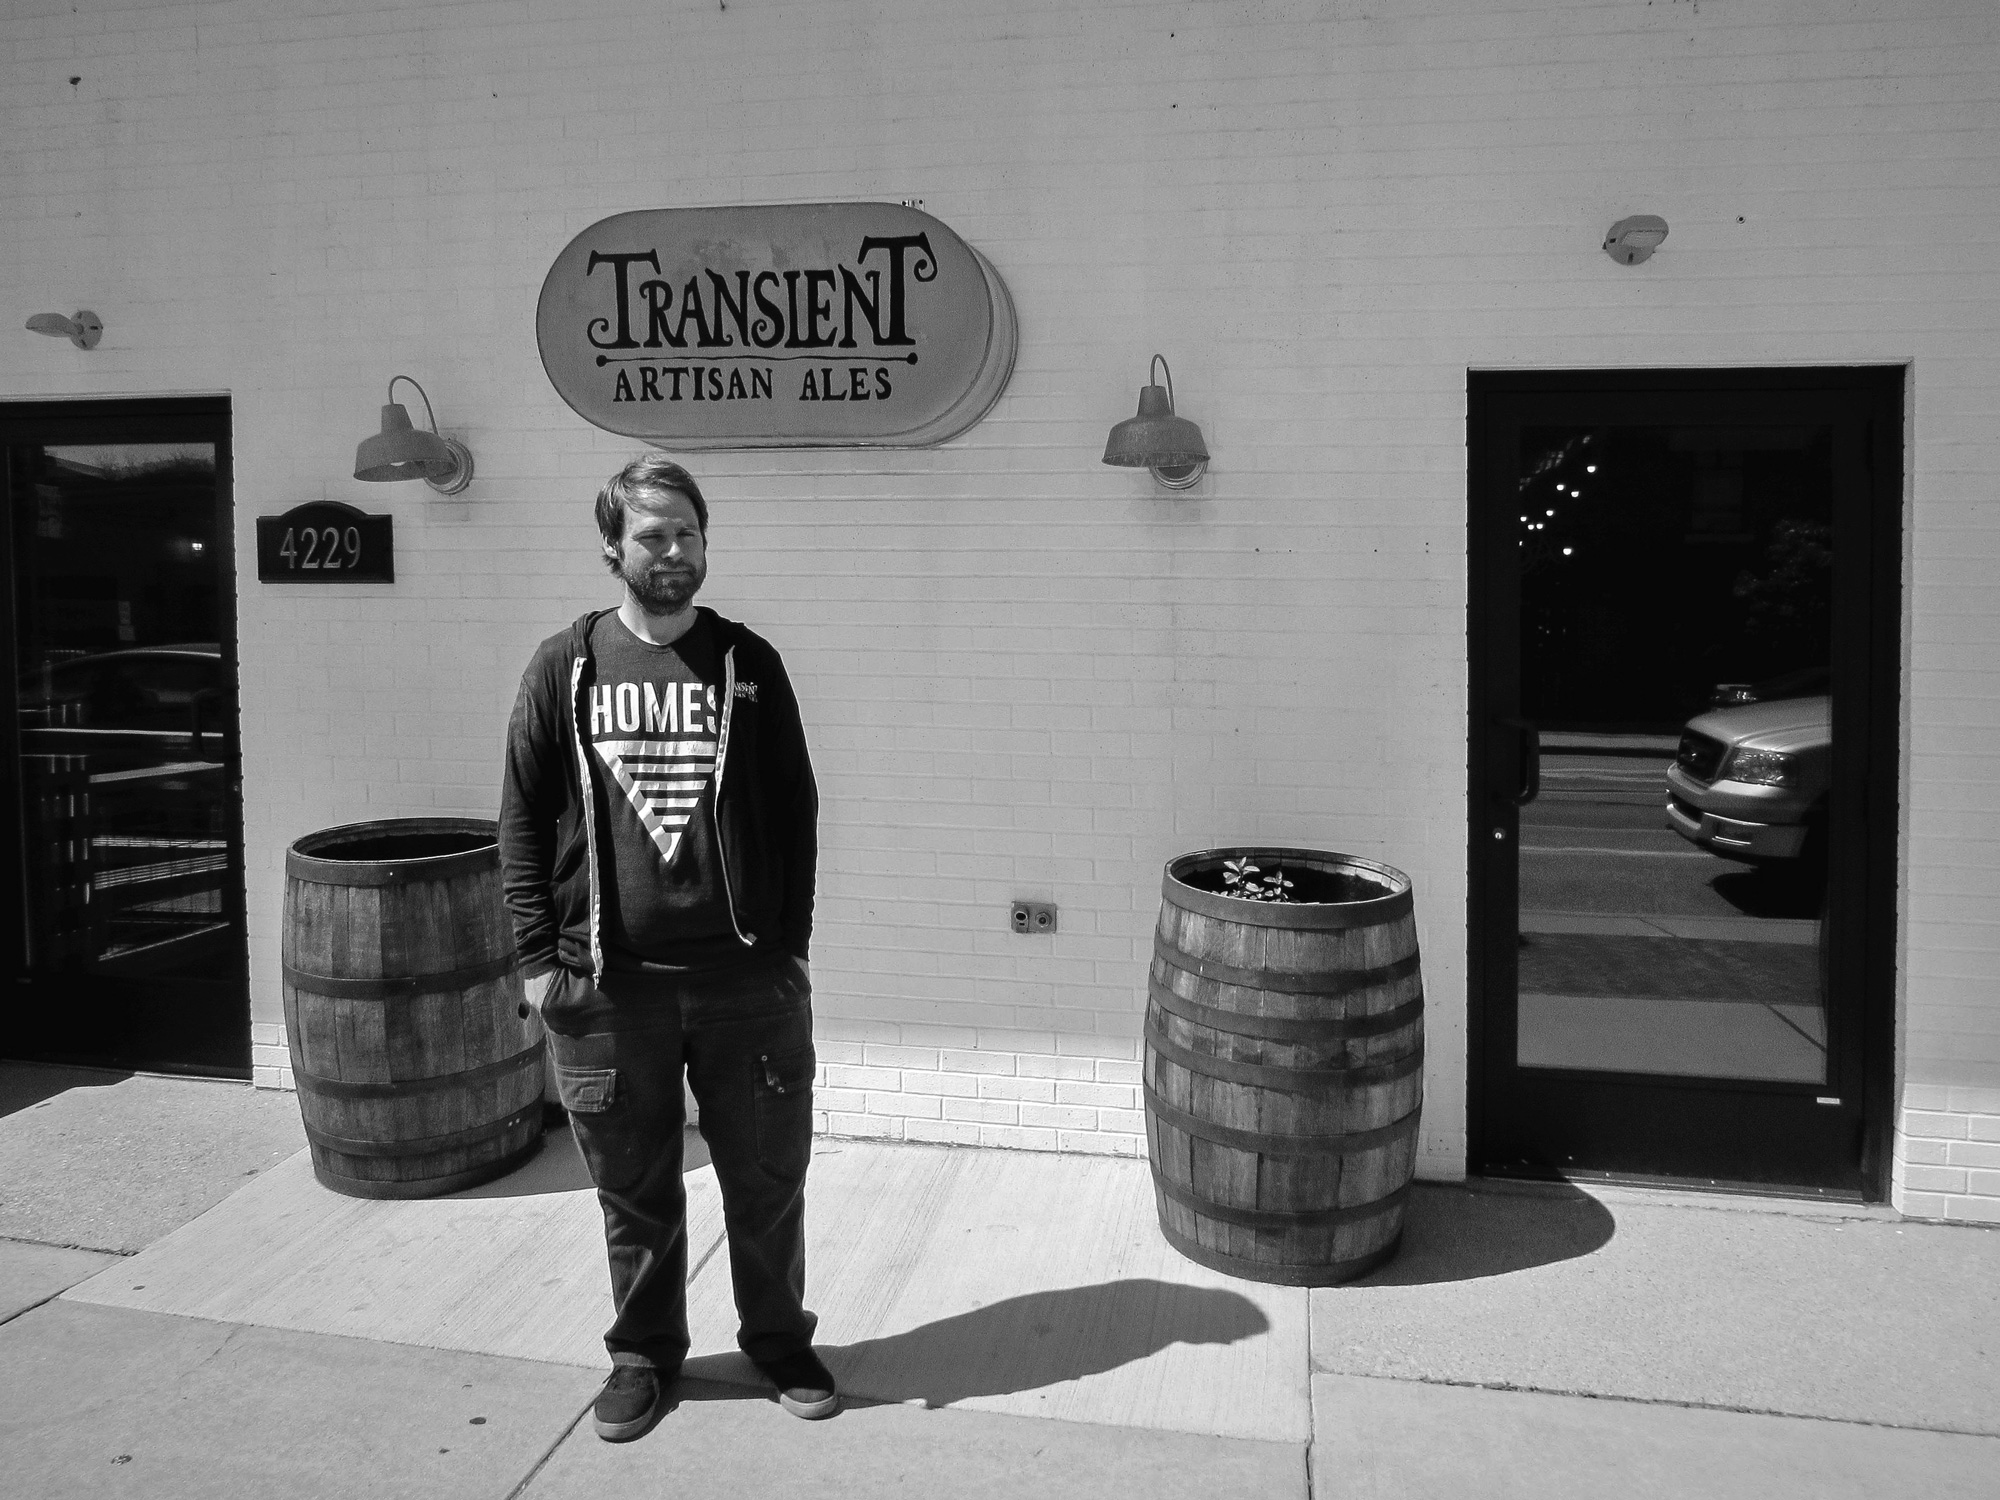 Transient Owner/Brewer, Chris Betts.